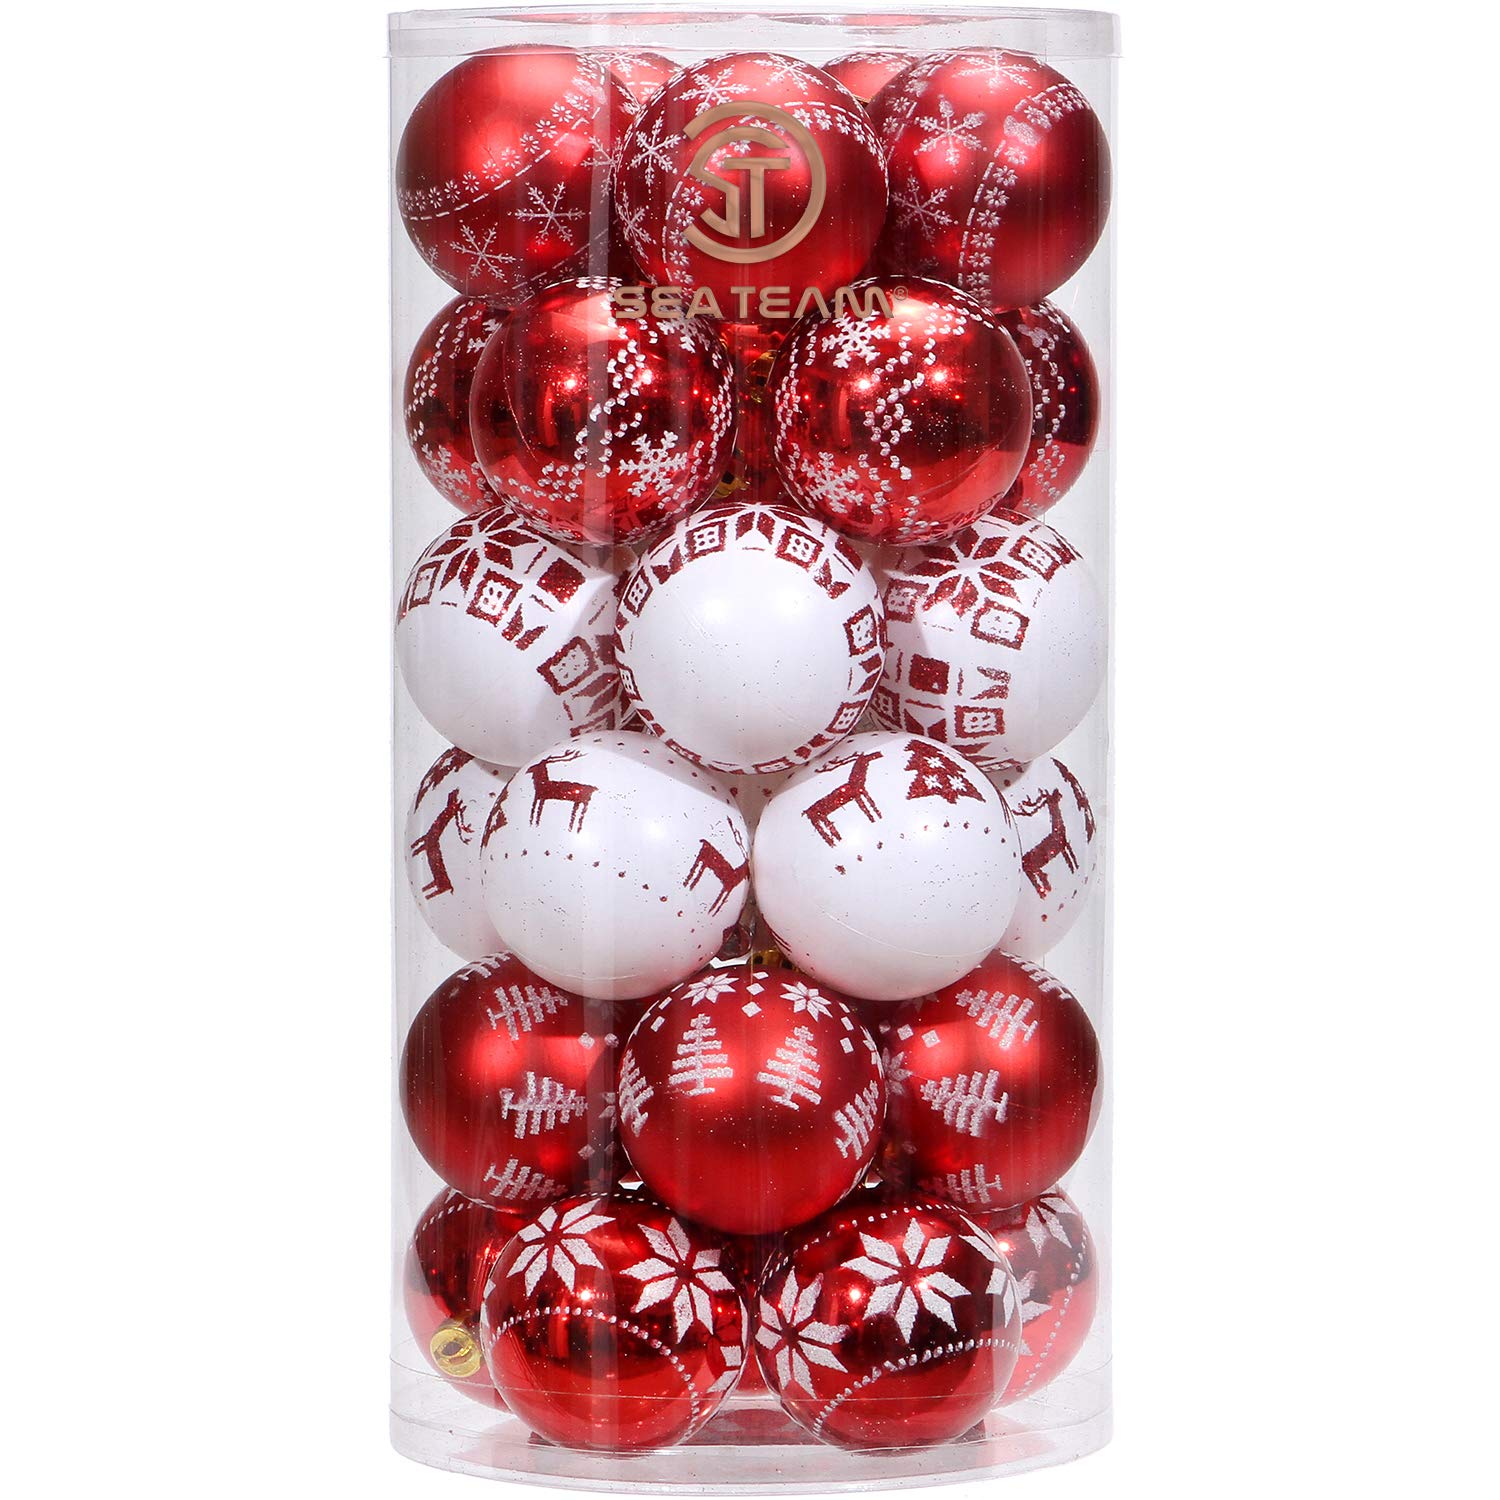 Sea Team 60mm/2.36 Delicate Painting & Glittering Christmas Tree Pendants Shatterproof Hanging Christmas Ball Ornaments Set - 30 Pieces, Red & White STCB30B6A-RW